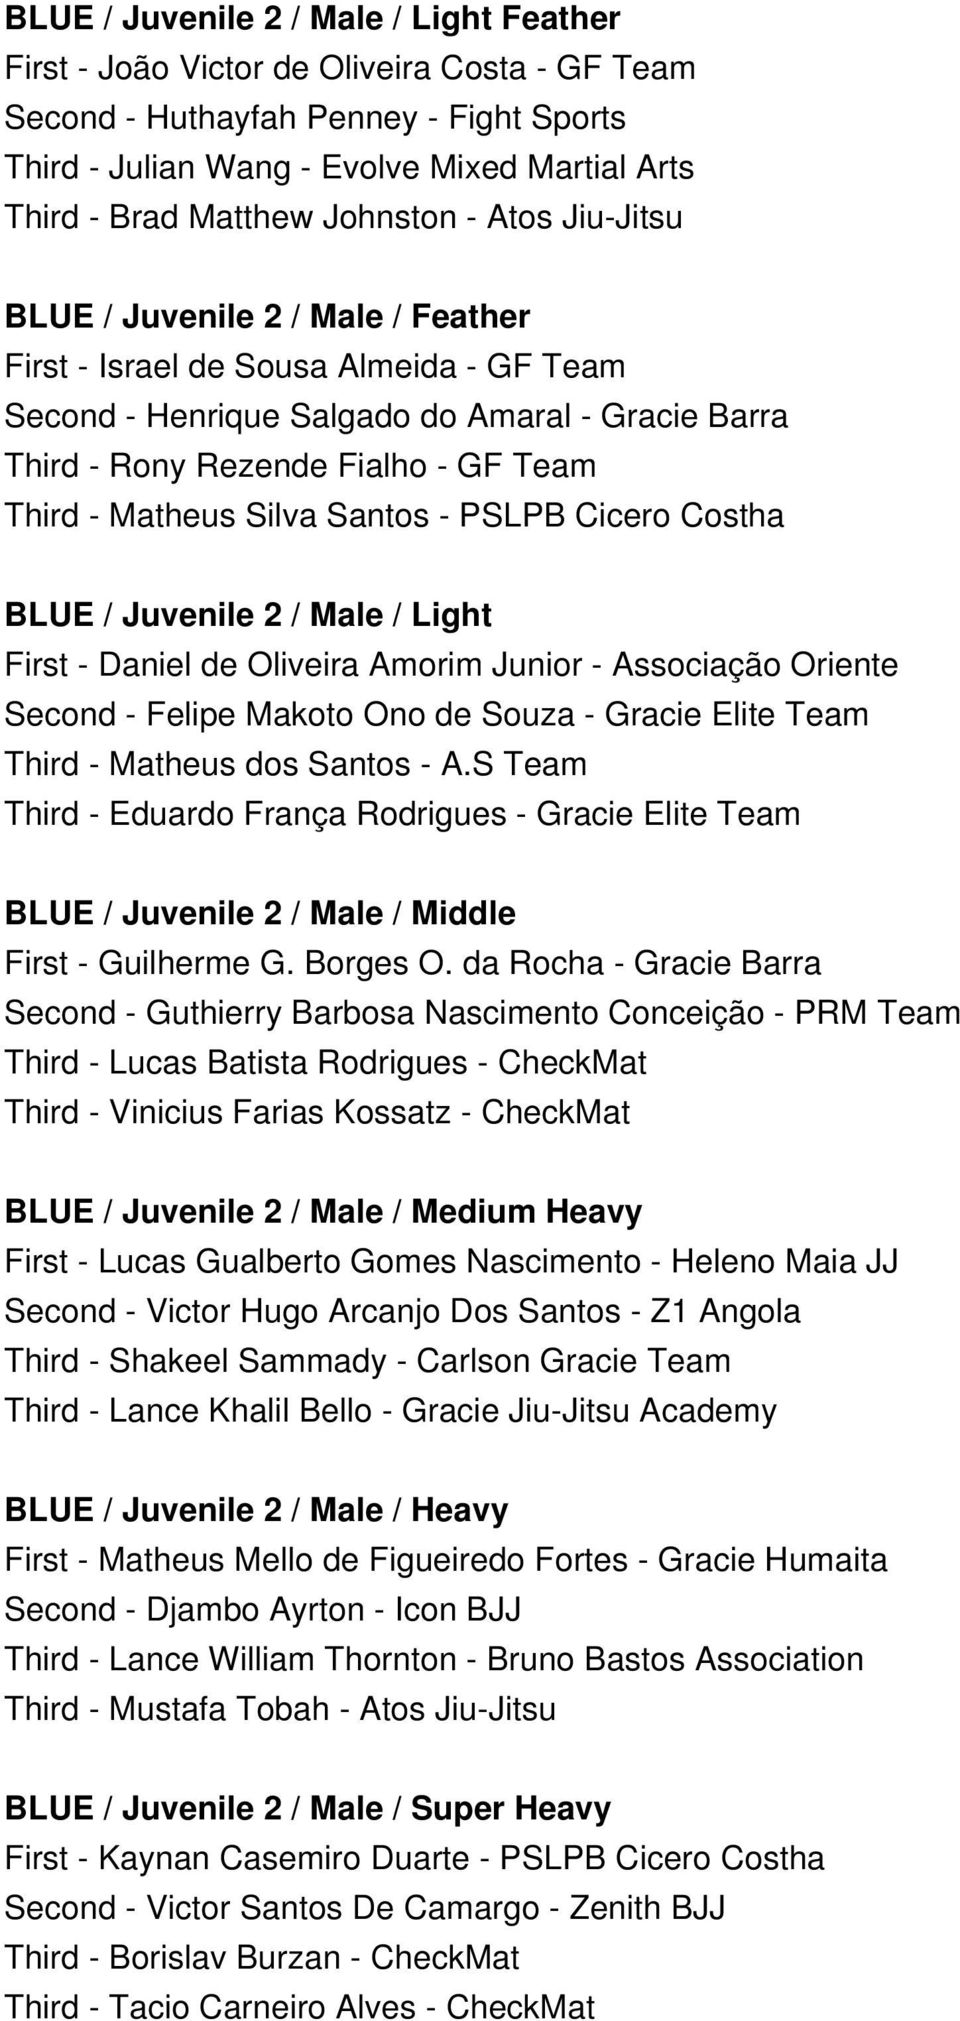 Matheus Silva Santos - PSLPB Cicero Costha BLUE / Juvenile 2 / Male / Light First - Daniel de Oliveira Amorim Junior - Associação Oriente Second - Felipe Makoto Ono de Souza - Gracie Elite Team Third